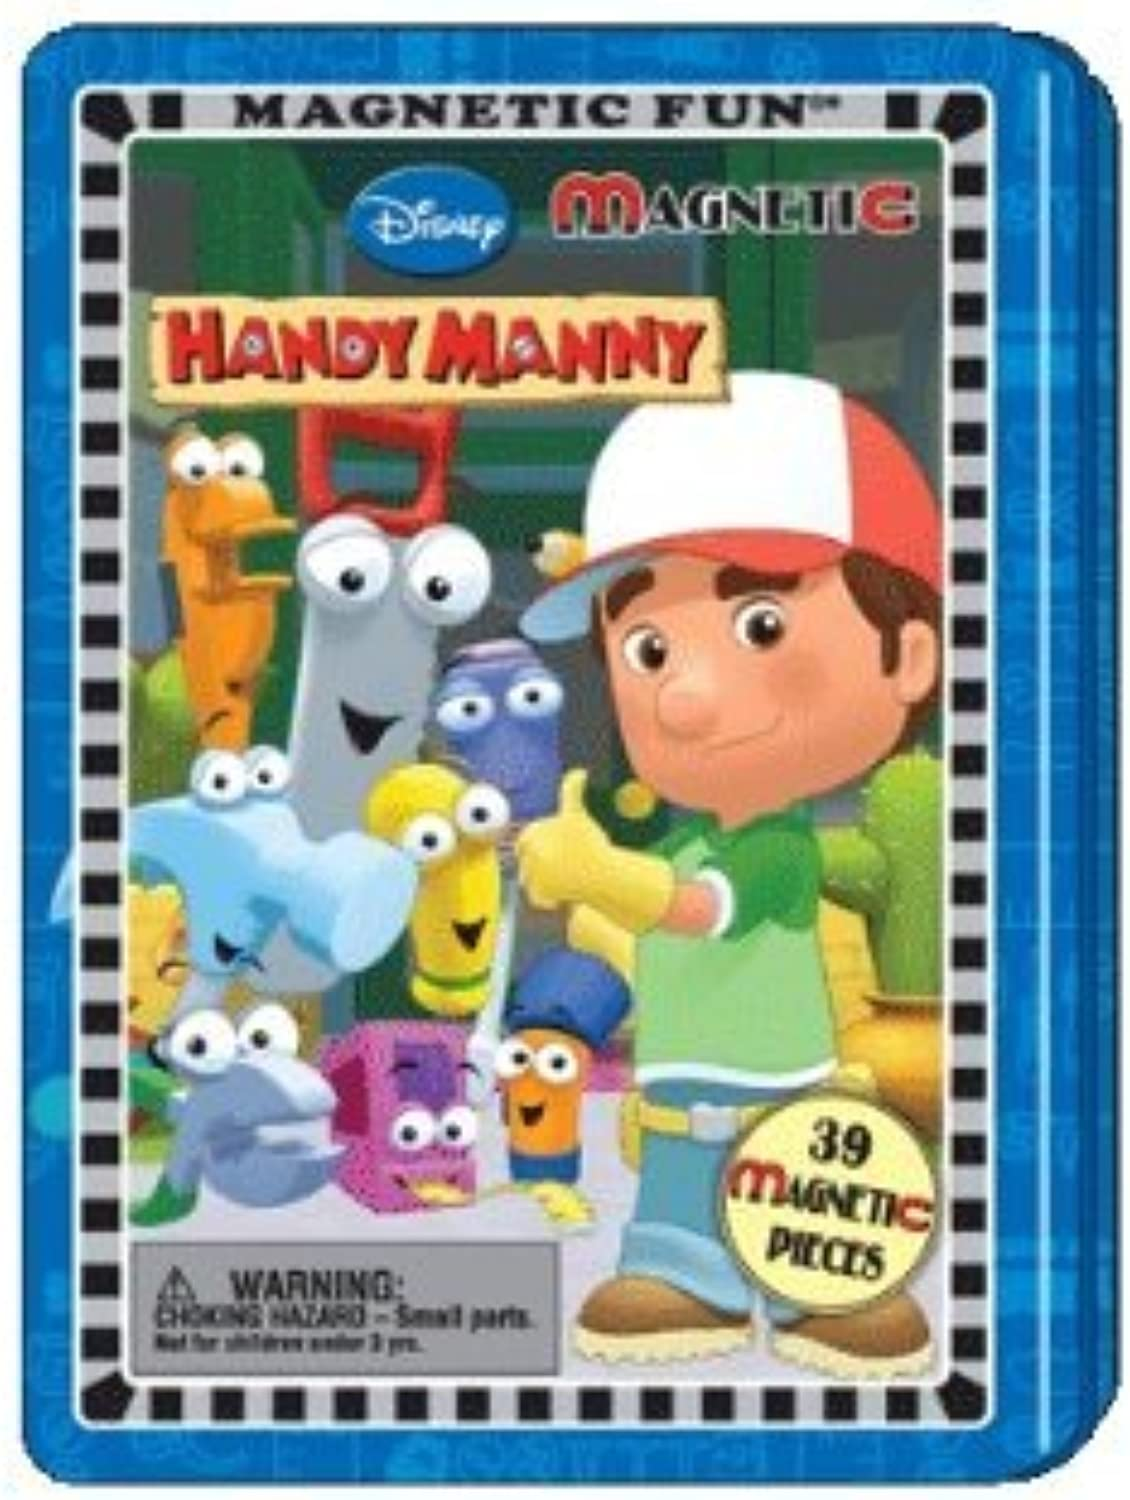 1 X Disney Handy Manny Magnetic Fun Tin